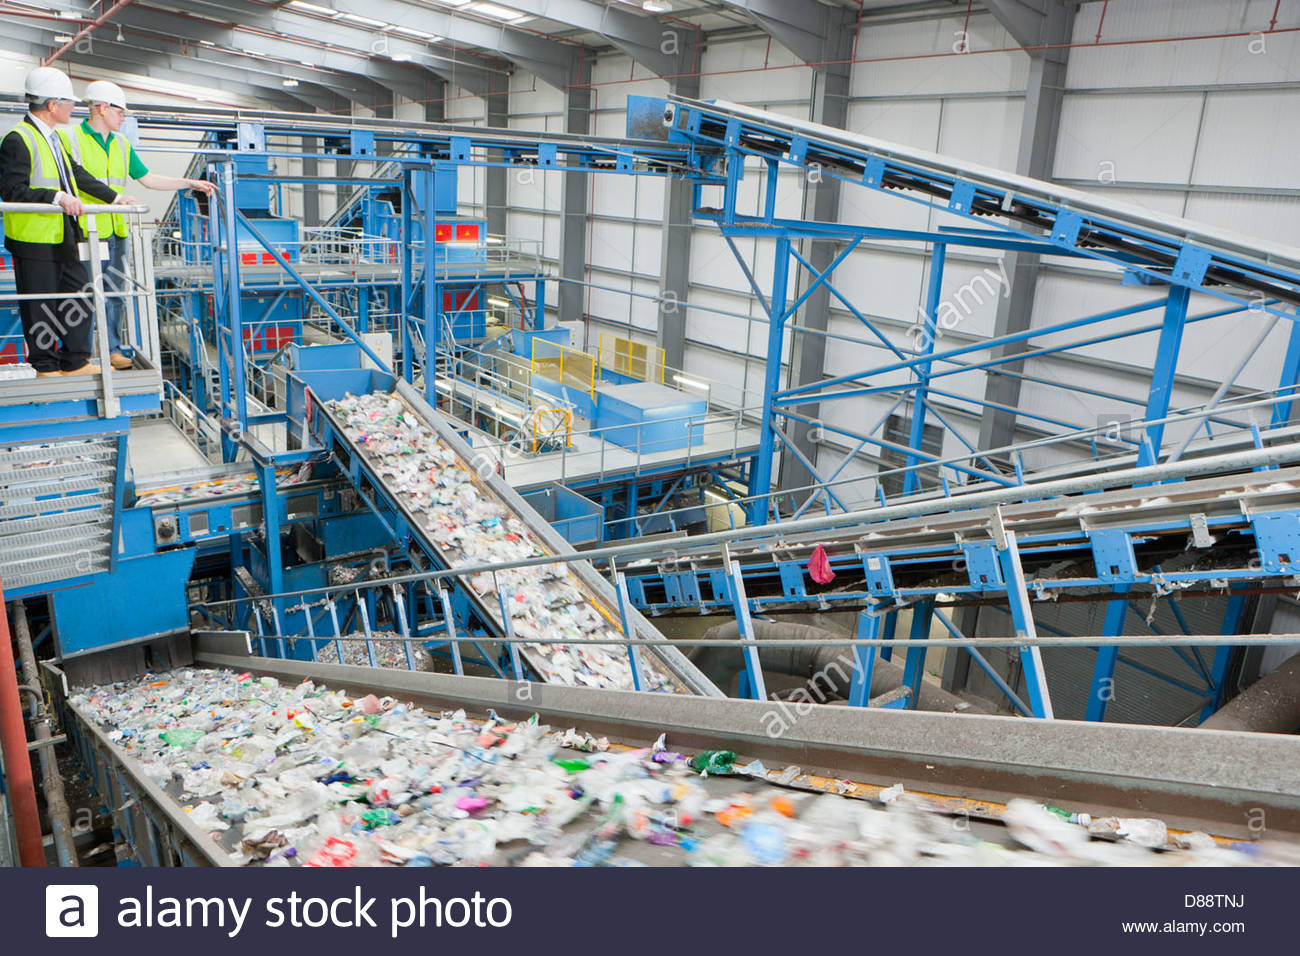 Businessman and worker on platform above conveyor belts in recycling plant - Stock Image